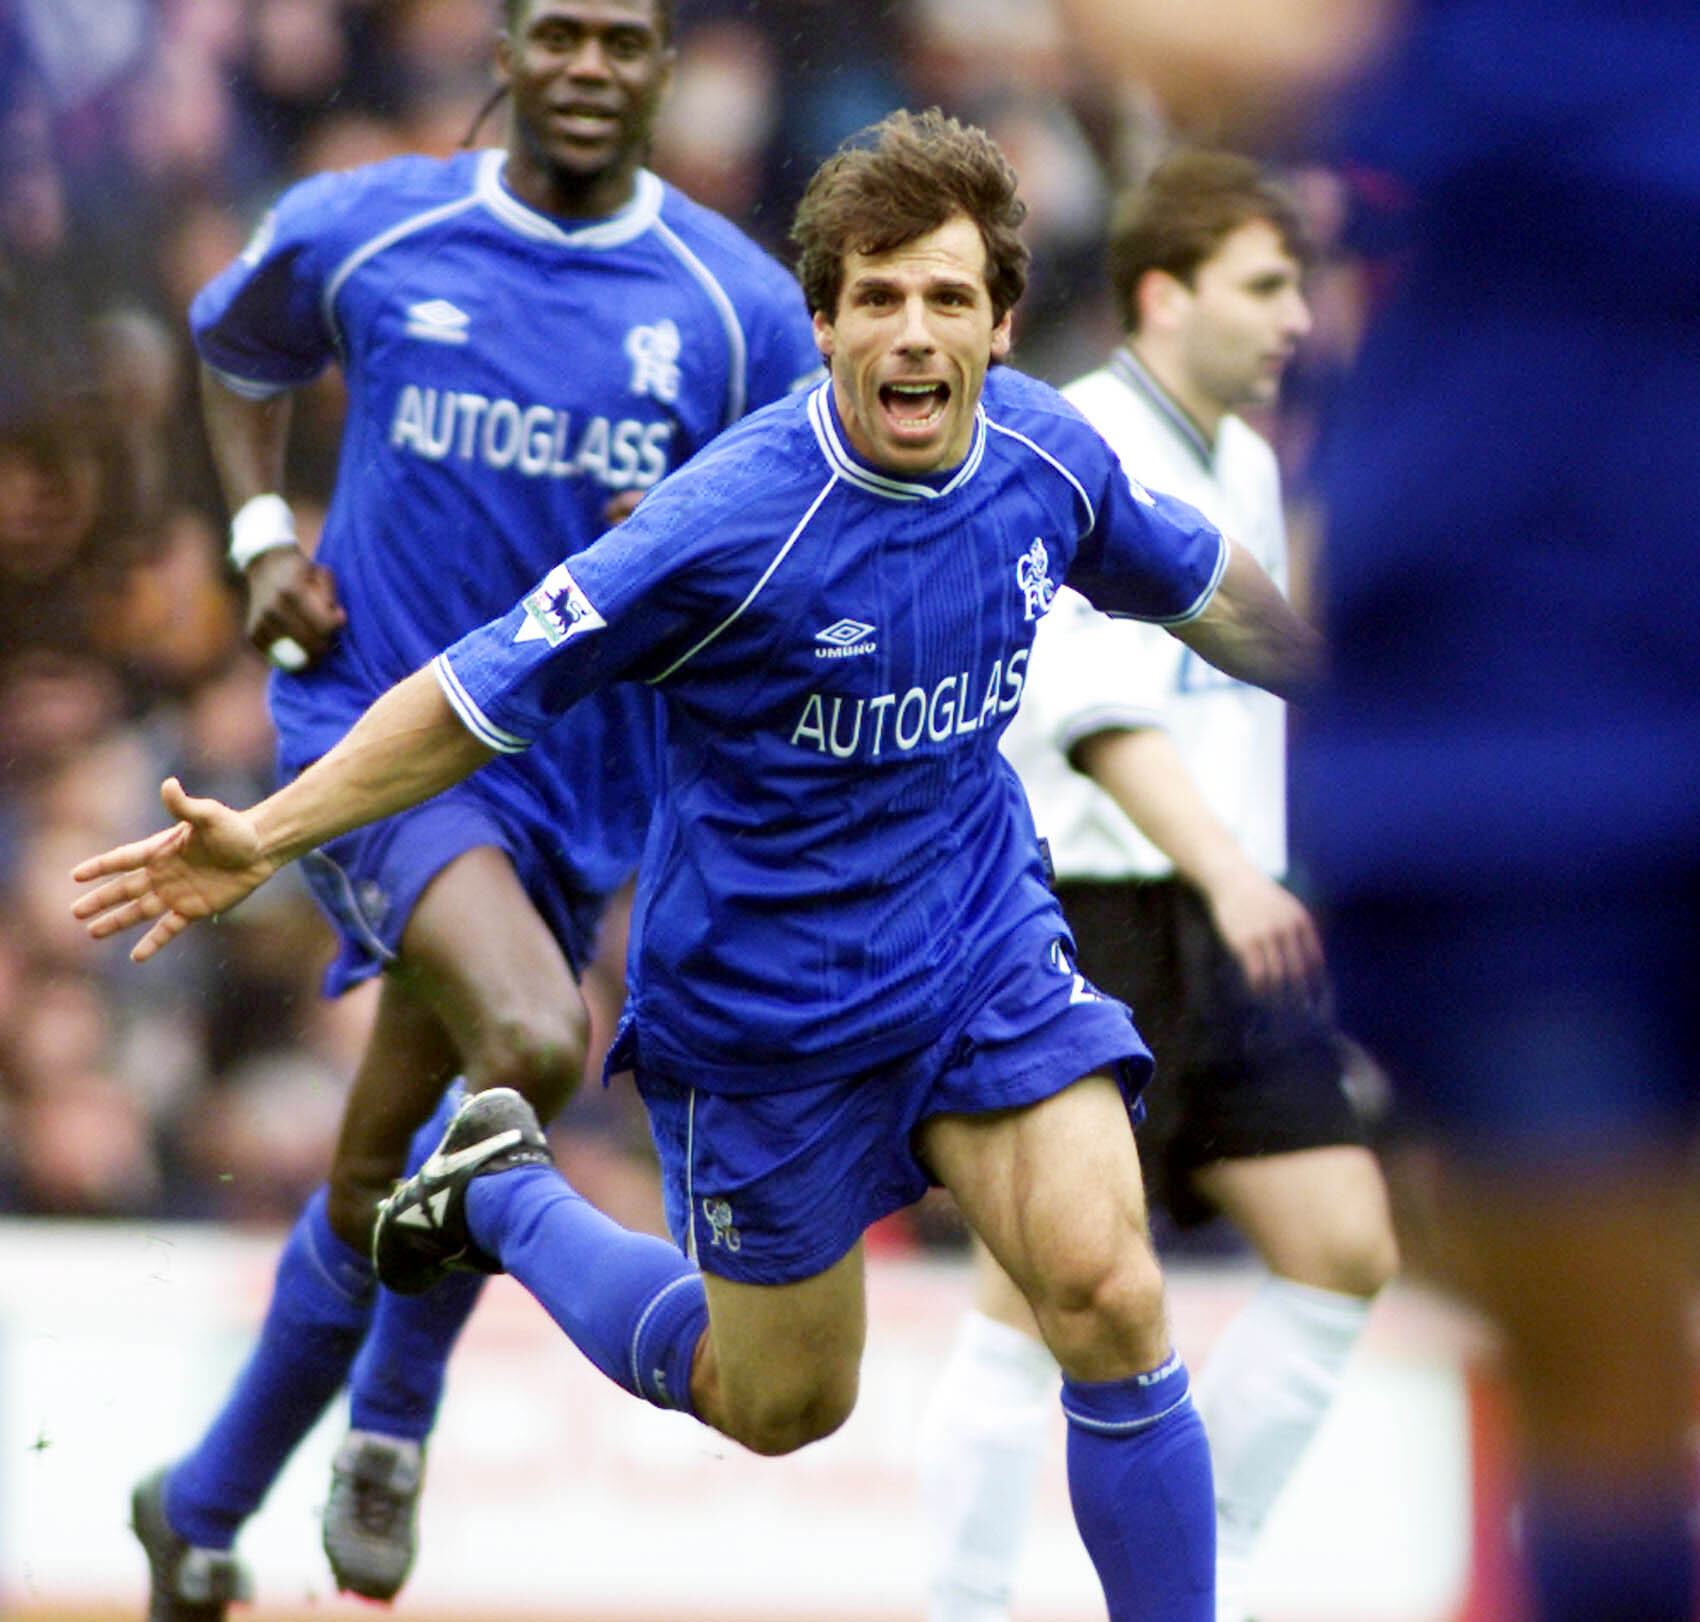 Gianfranco Zola was a much-loved member of Chelsea's team